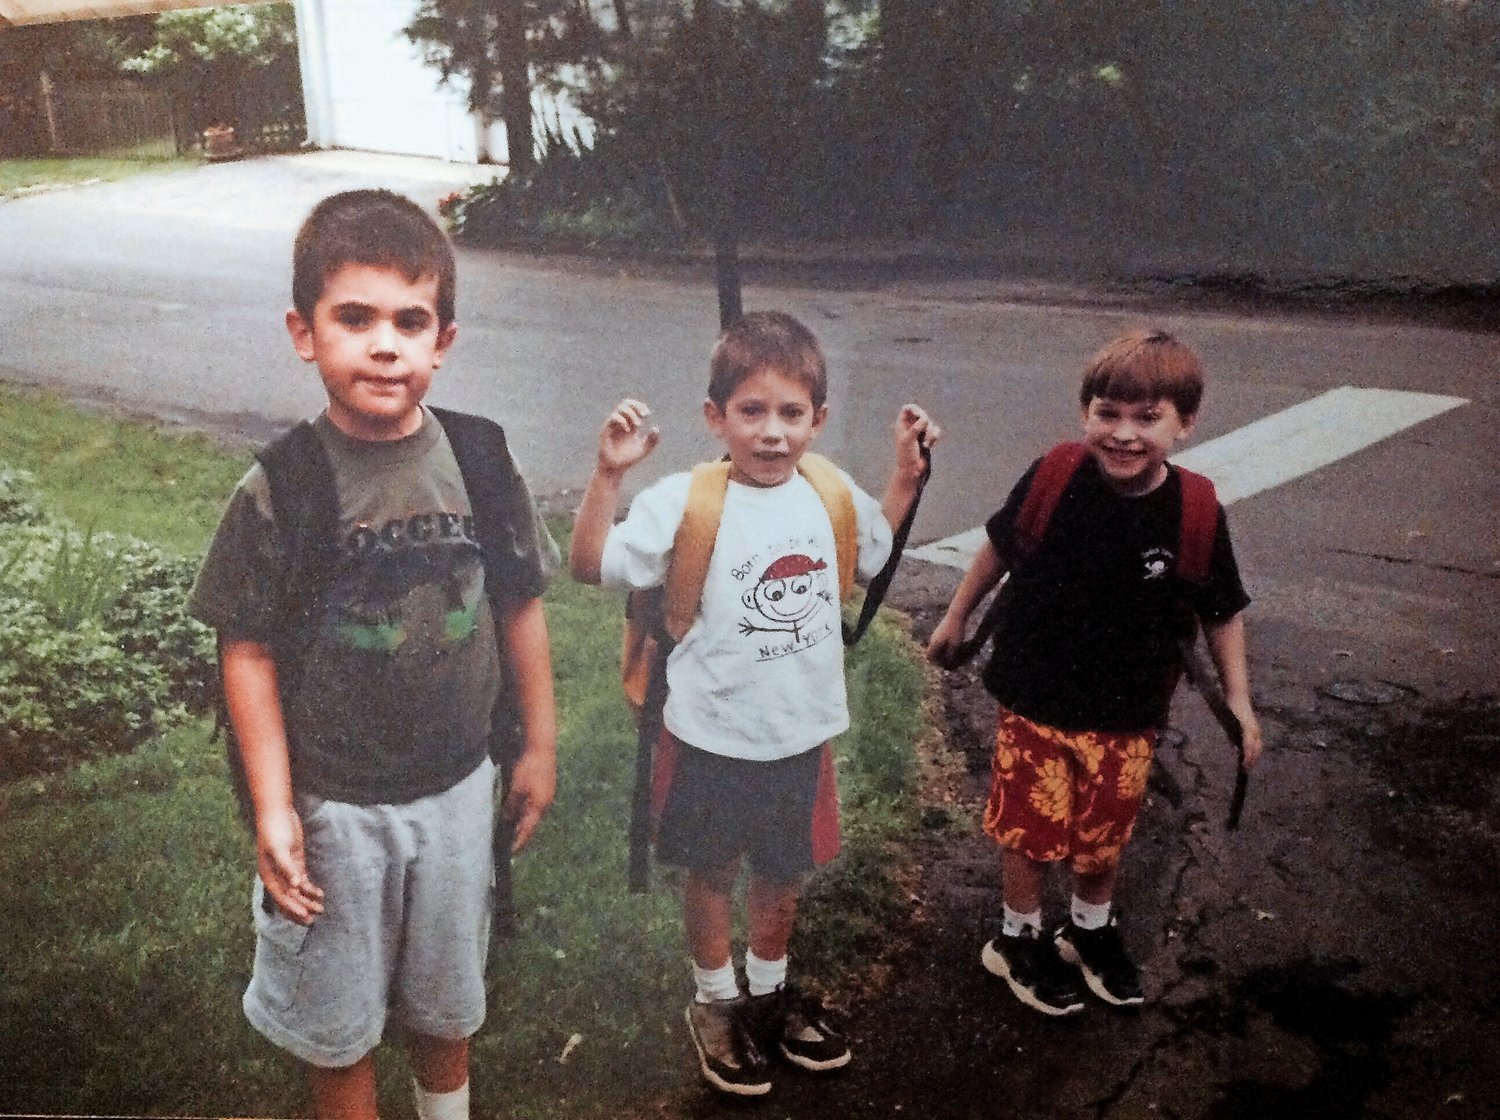 Then-first-grader Robert, left, at the bus stop.